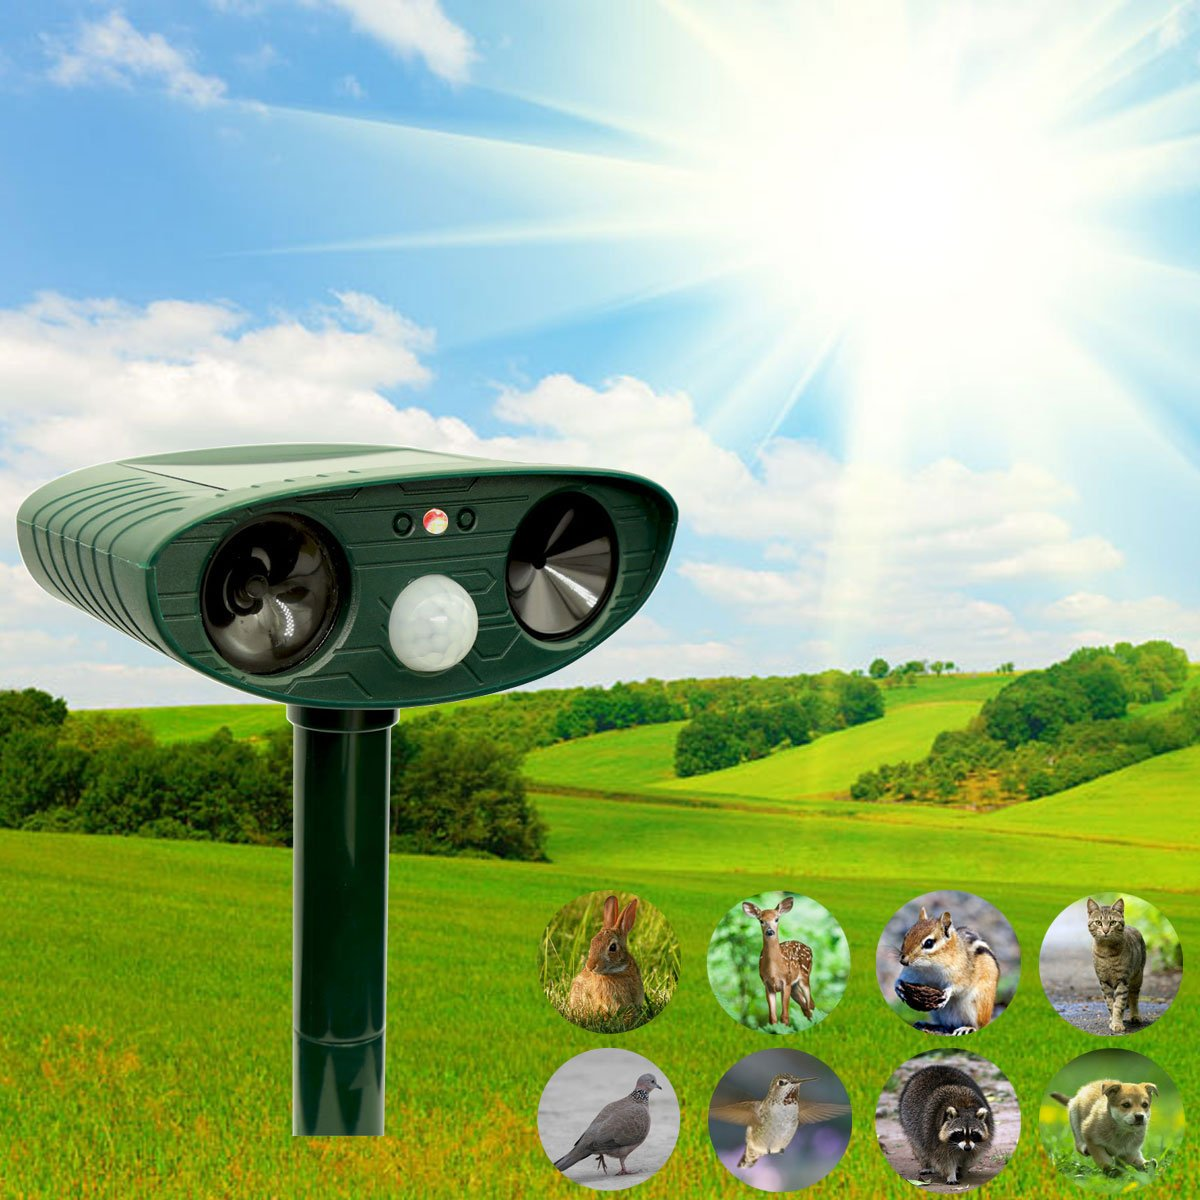 Zovenchi Ultrasonic Animal Repeller Solar Powered Repellent With Scarer Motion Sensor And Red Flashing Lights Outdoor Waterproof Farm Garden Yard